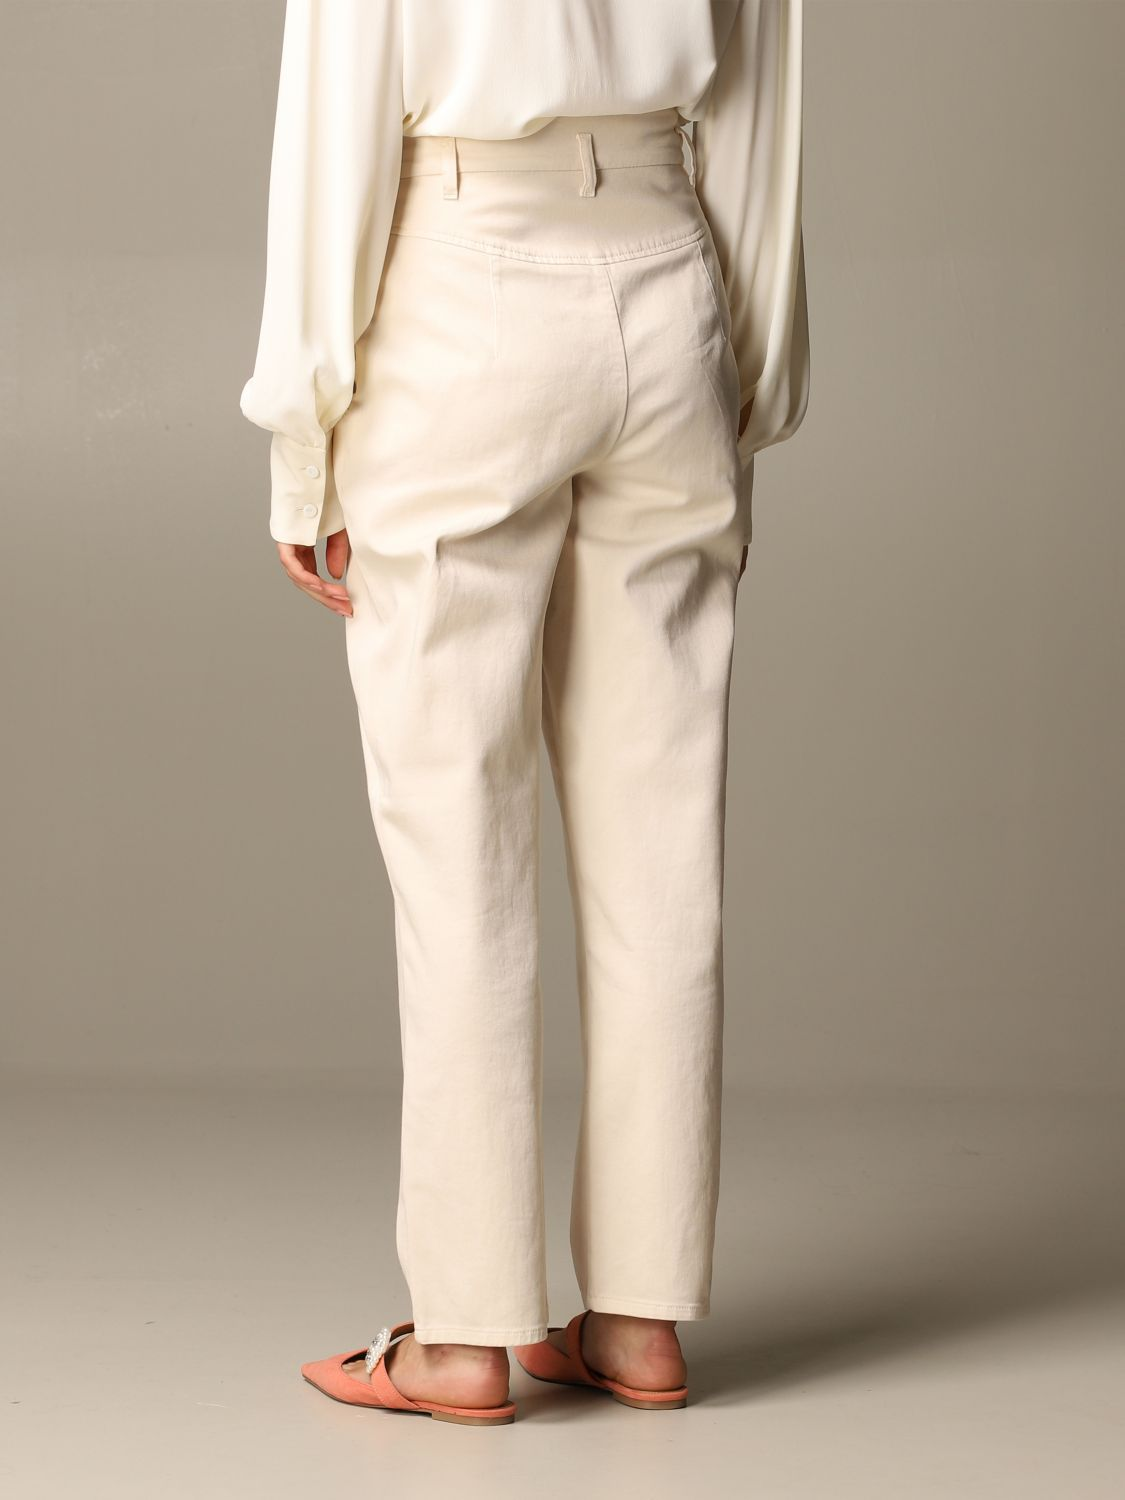 Trousers Alberta Ferretti: Trousers women Alberta Ferretti yellow cream 3